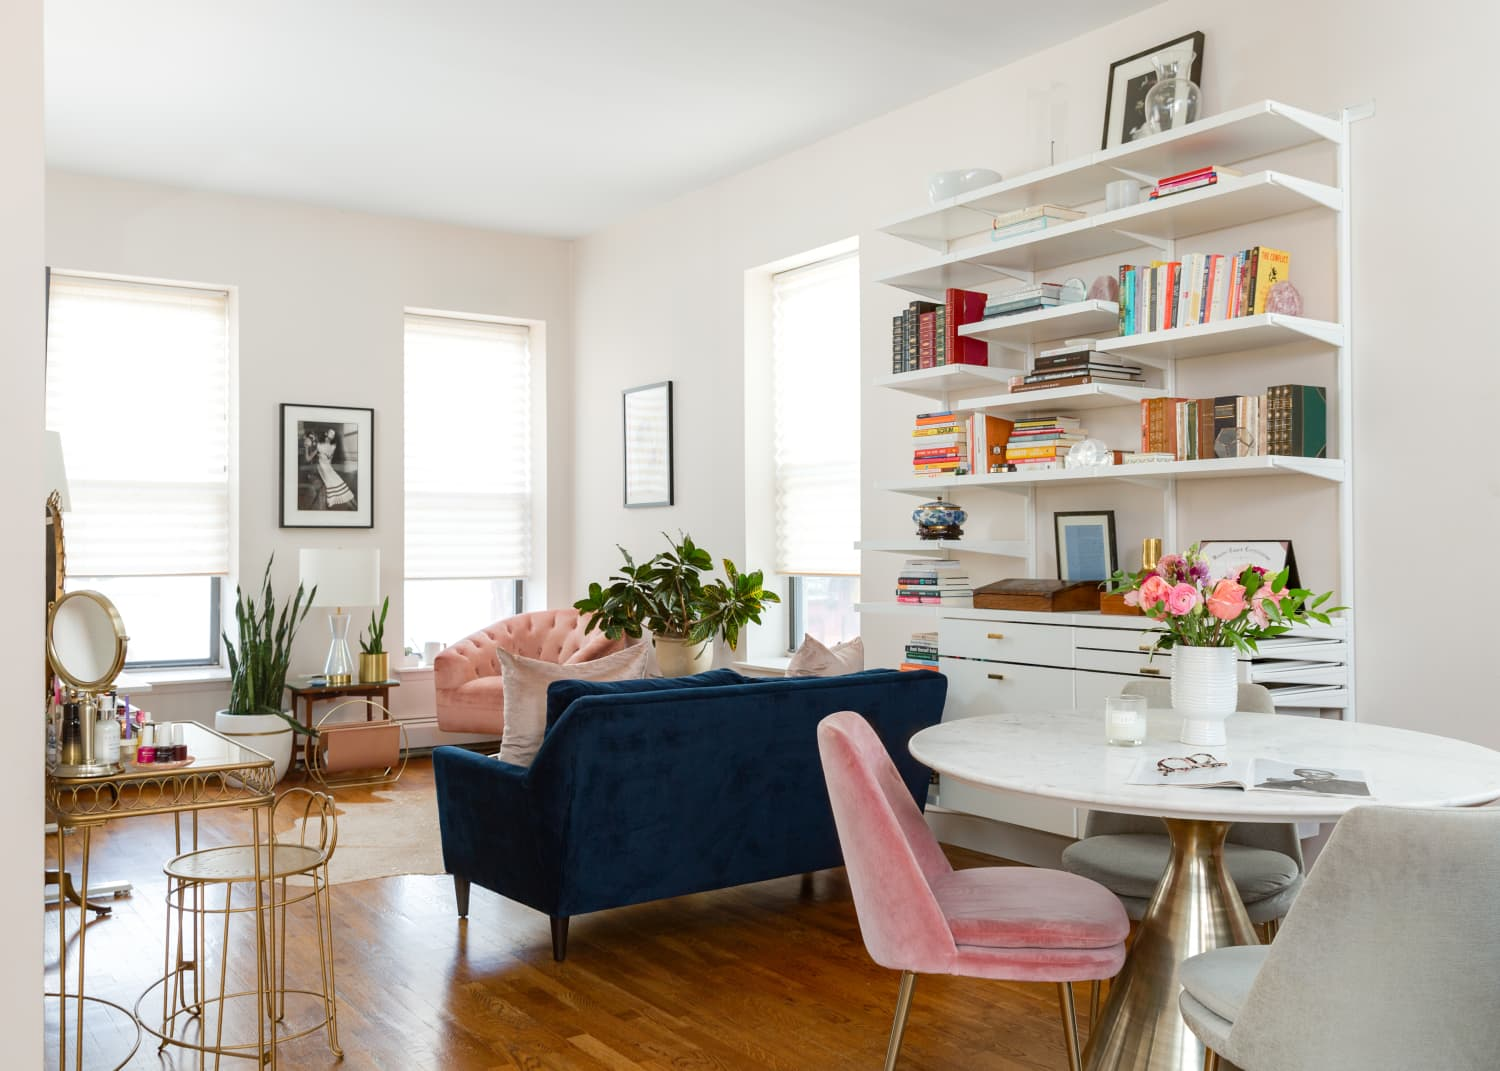 This Life Coach's Small and Serene NYC Apartment Boasts Modern Furniture, Family Antiques, and Art by Women Artists